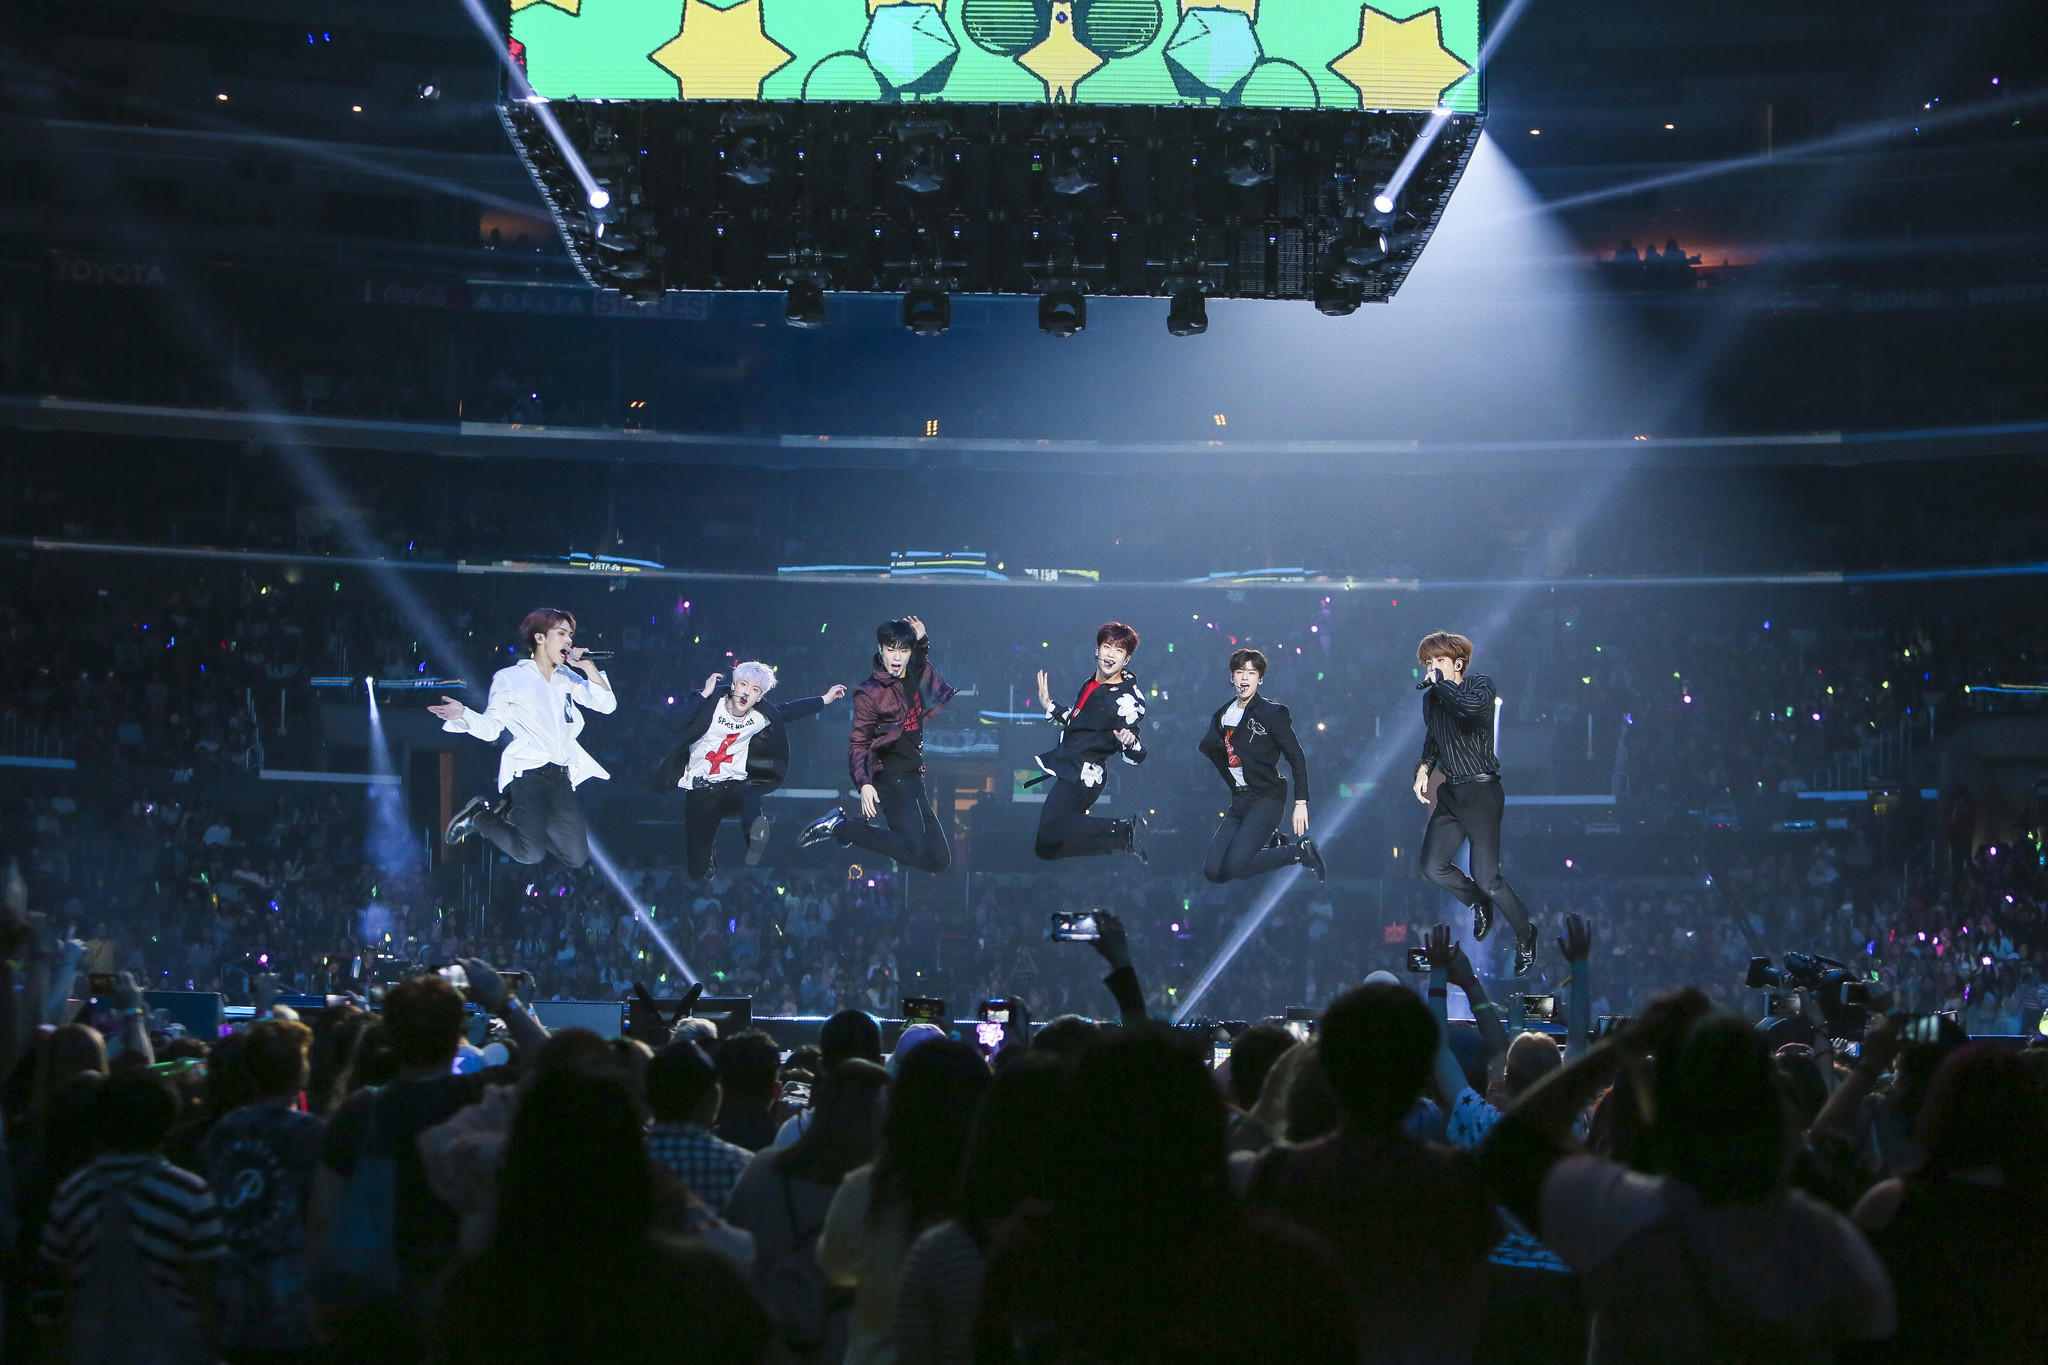 Astro elevates the crowd at KCON on Sunday. (KCON / MNET)